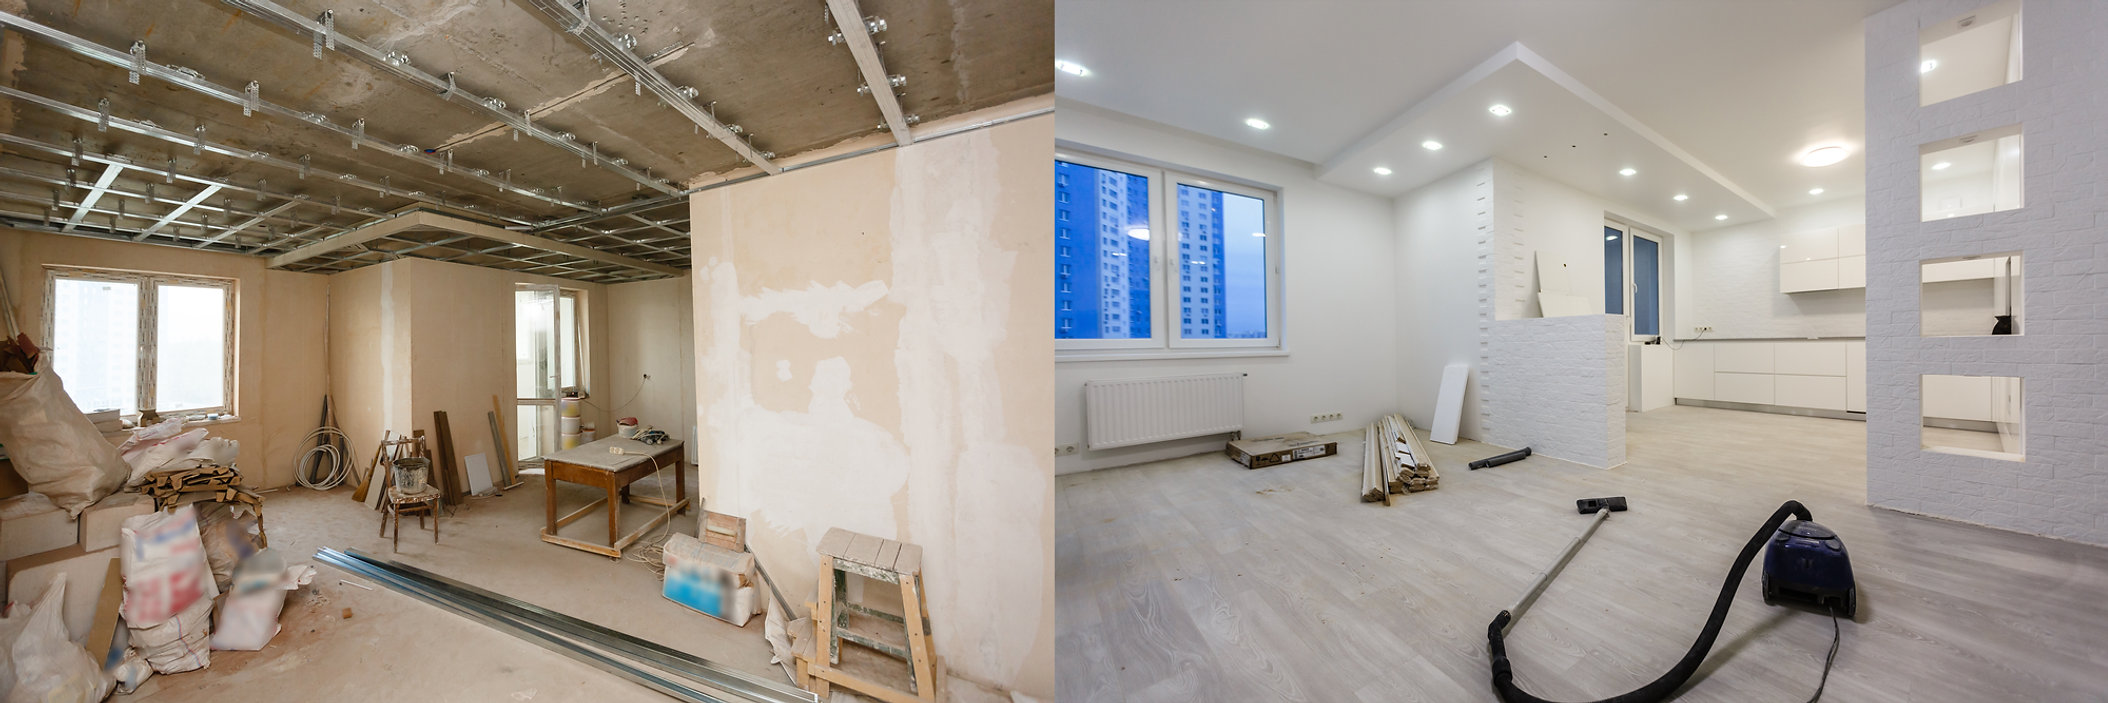 Comparison of a room in an apartment bef